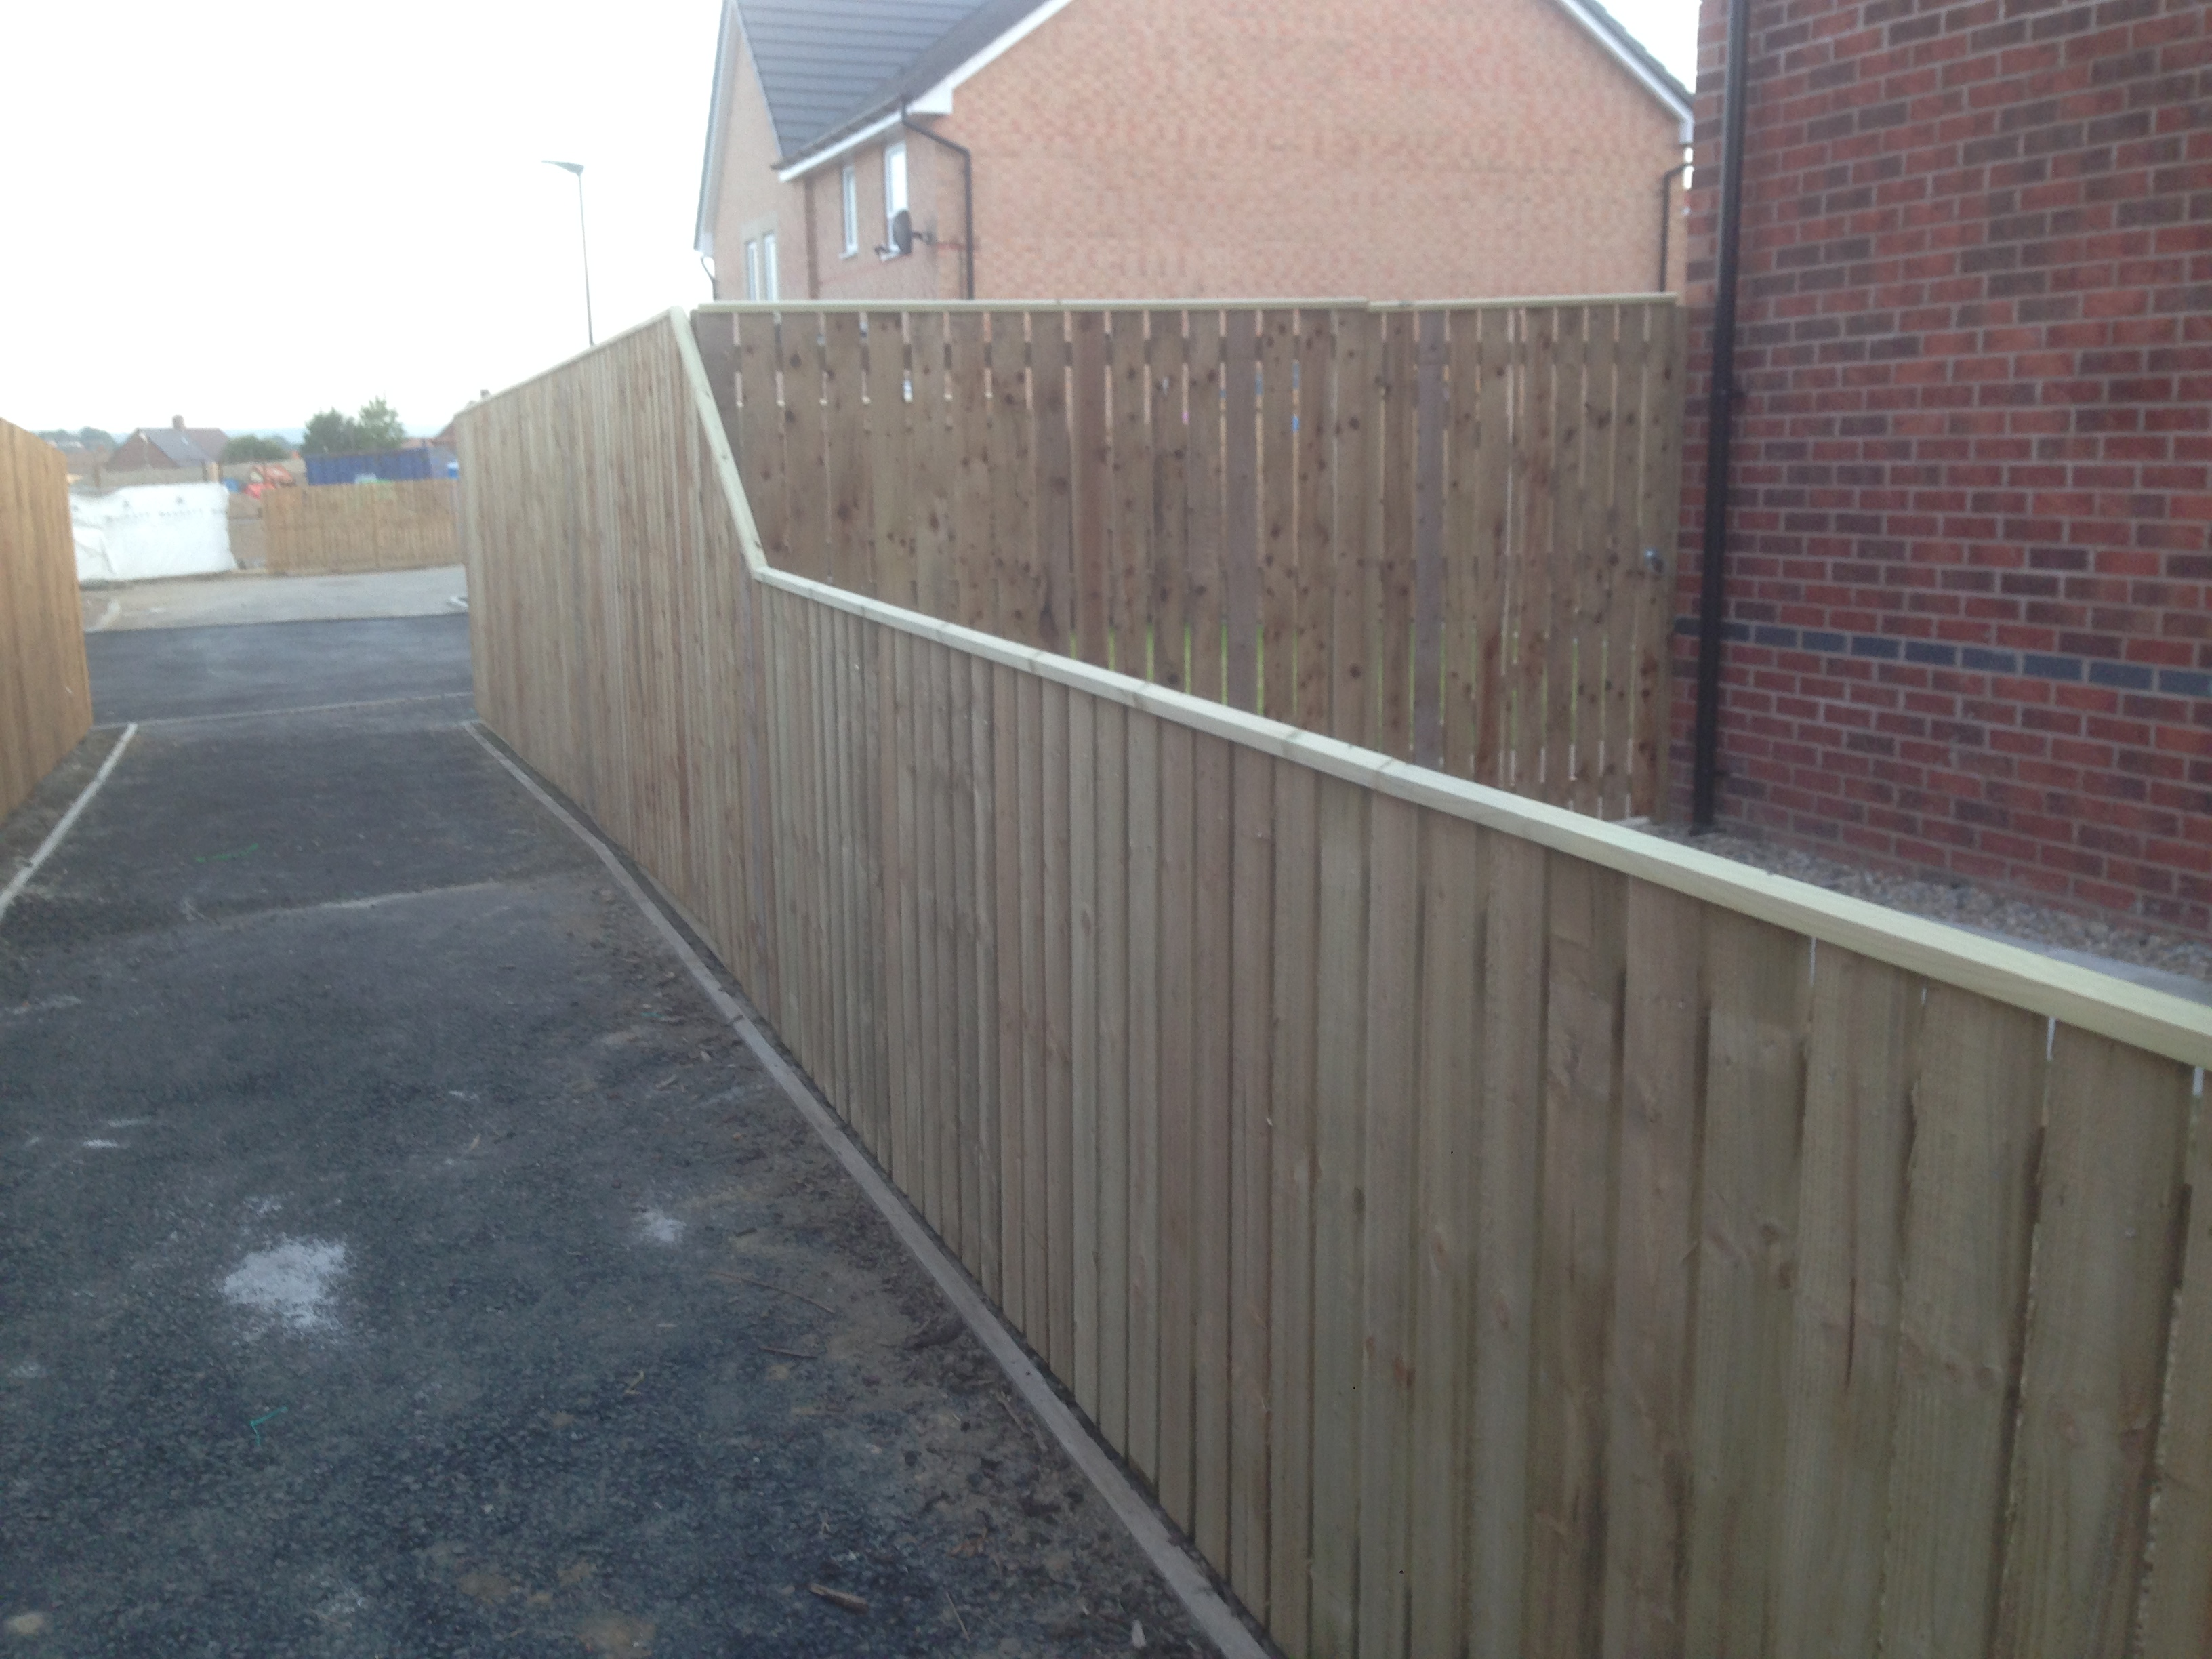 Professional Garden Fencing Services Newcastle Upon Tyne